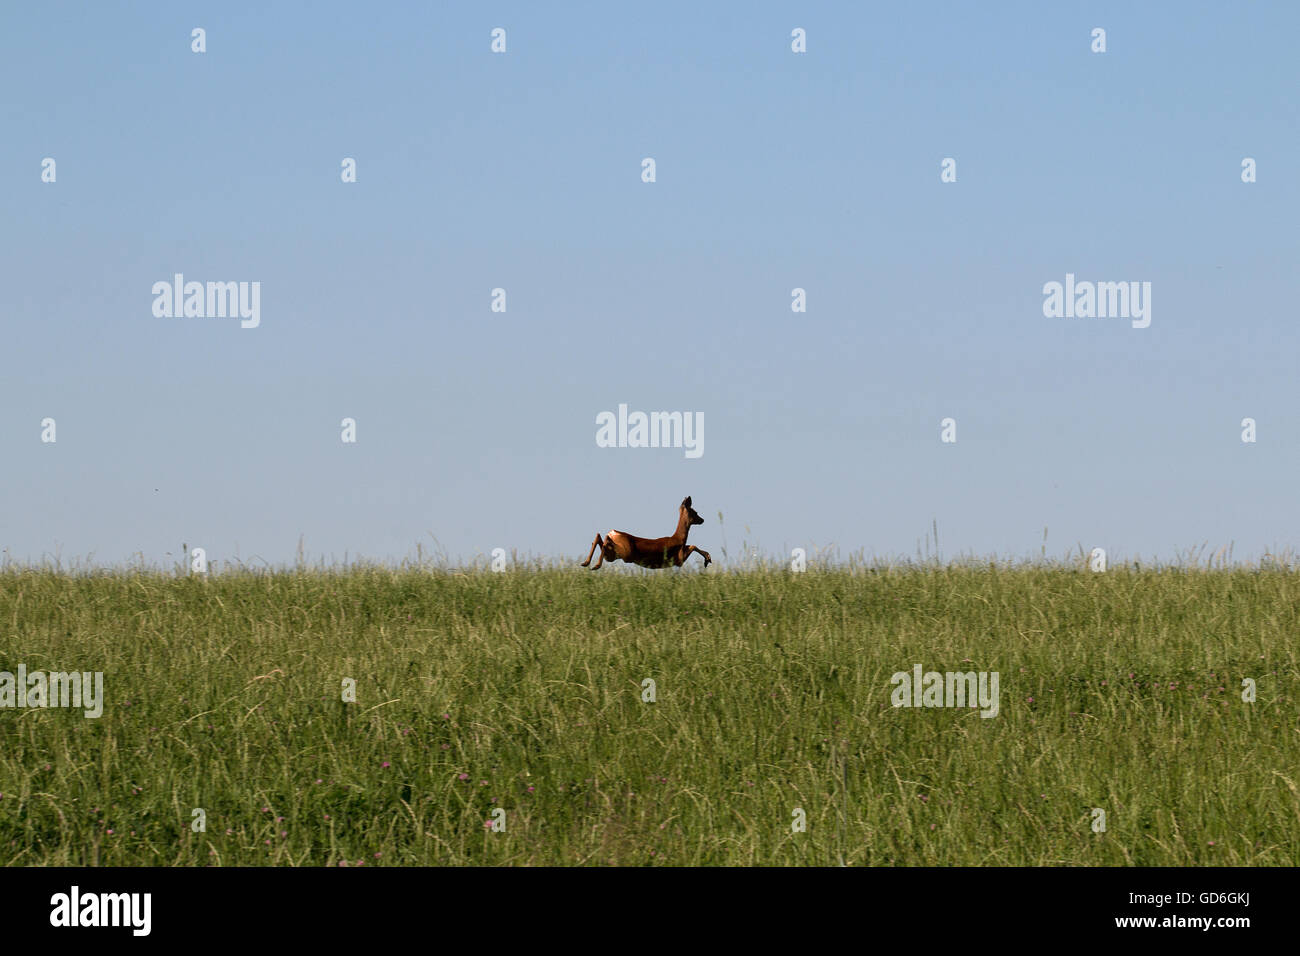 Reh springt über eine Wiese  Deer jumping over a meadow - Stock Image